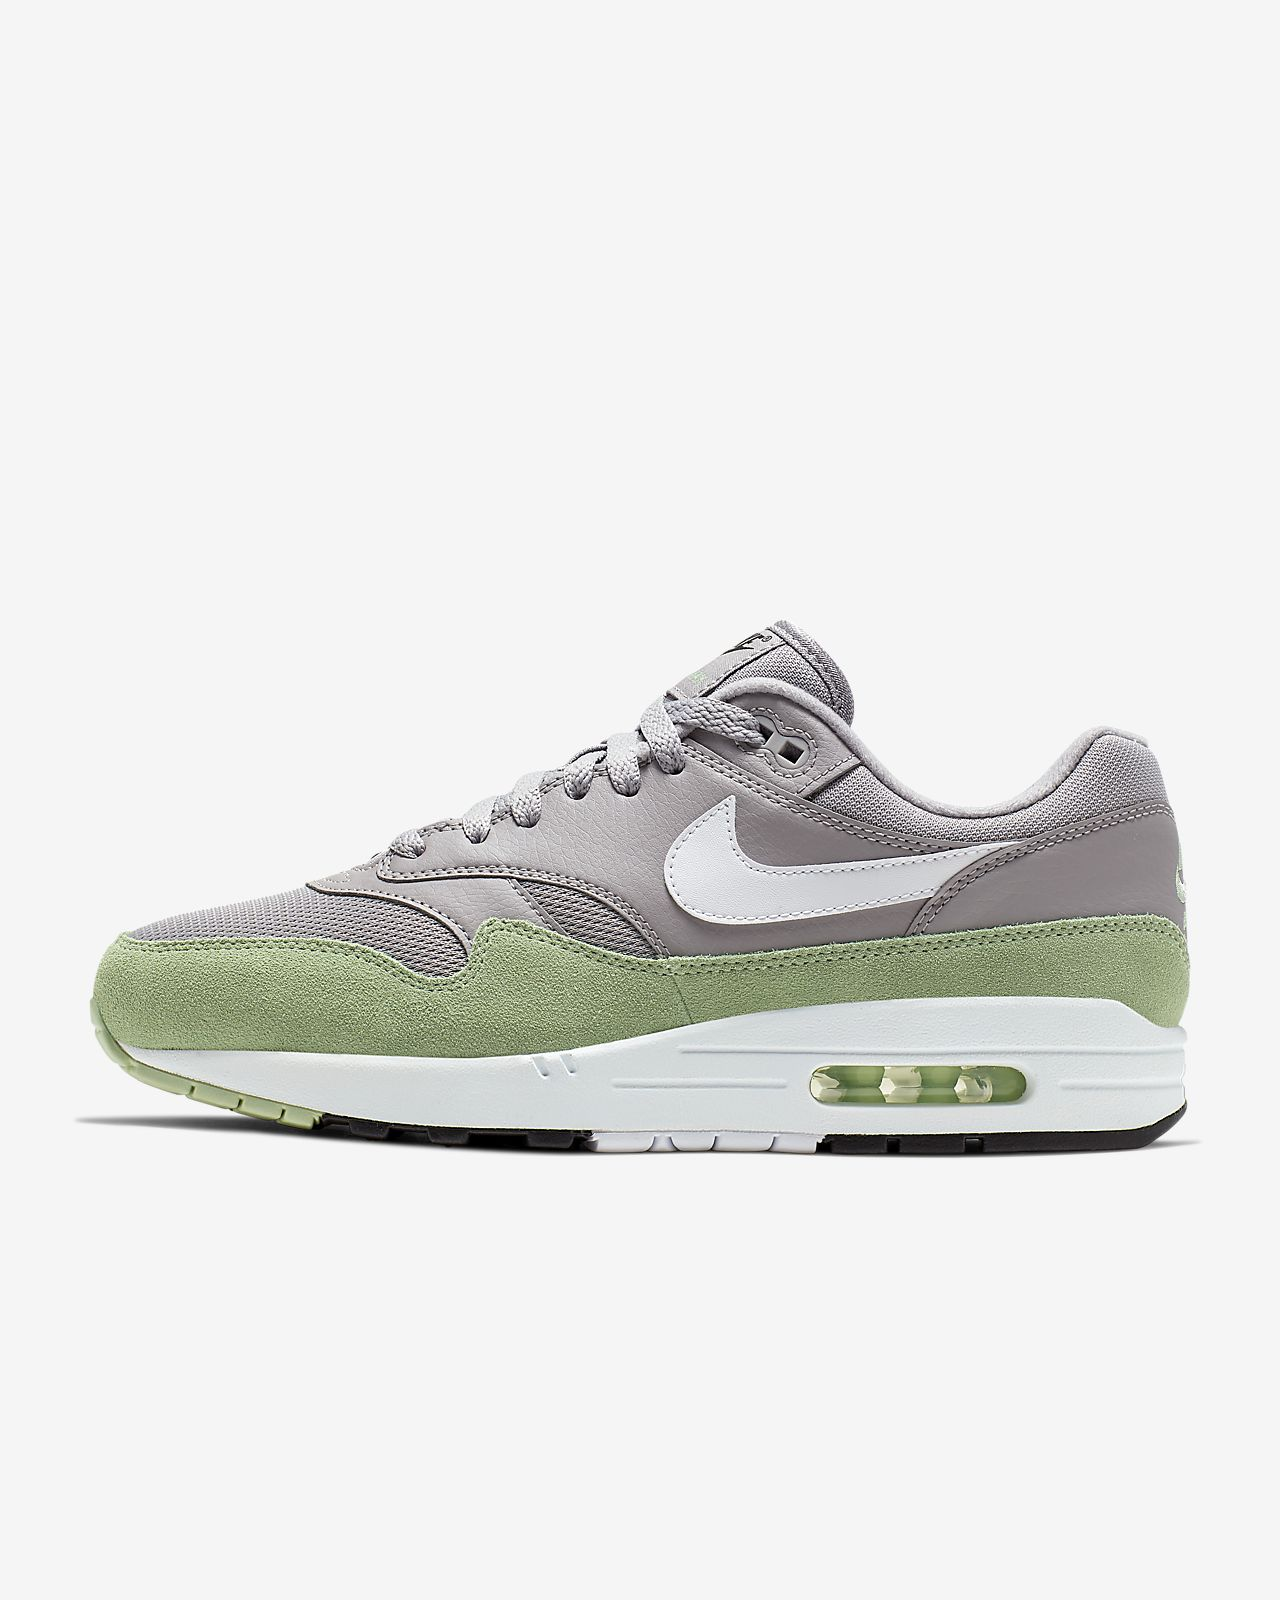 64bc2064a Nike Air Max 1 Men's Shoe. Nike.com